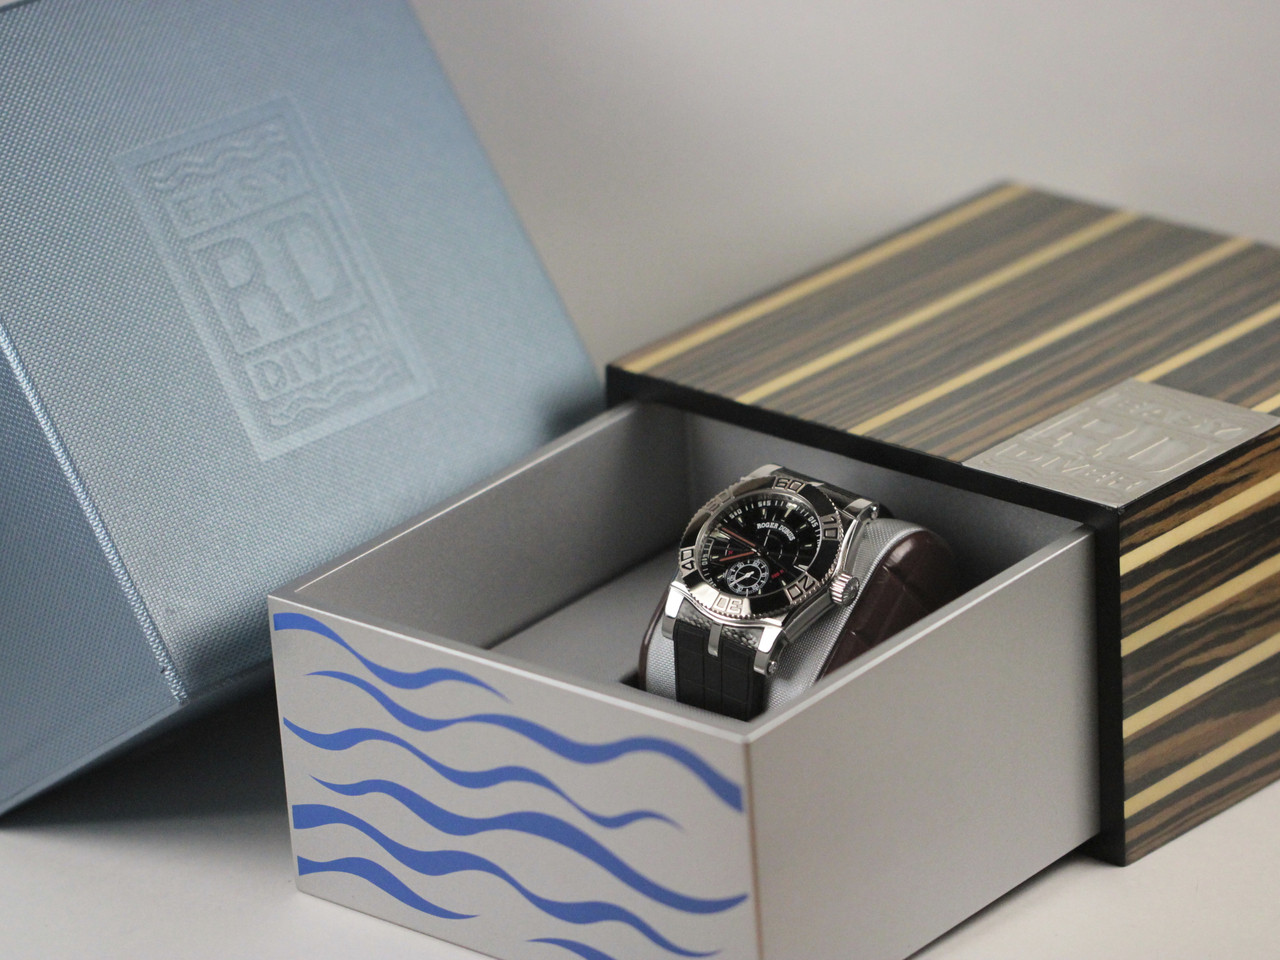 Box Detail : Roger Dubuis Watch - Easy Diver Black Dial White Gold Bezel - Legend of Time Chicago Watch Center